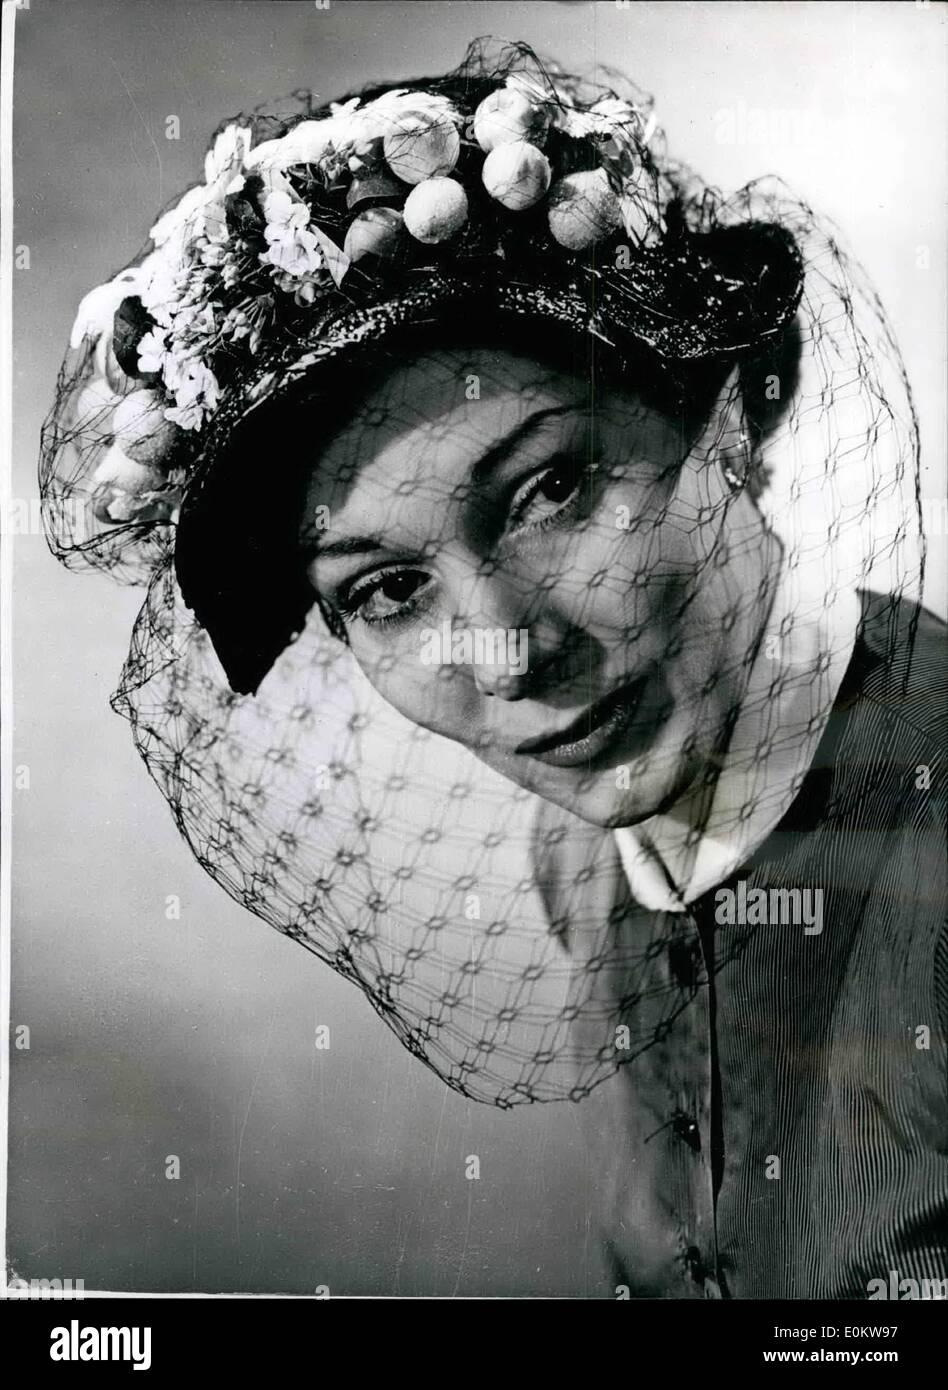 Apr. 04, 1950 - Garlanded with Fruit and Flowers Charming spring Hat style. Photo Shows A Garland of Fruit and Flowers forms the Decoration for this Striking Fancy black straw bonnet. A black veil completes the effect. - Stock Image